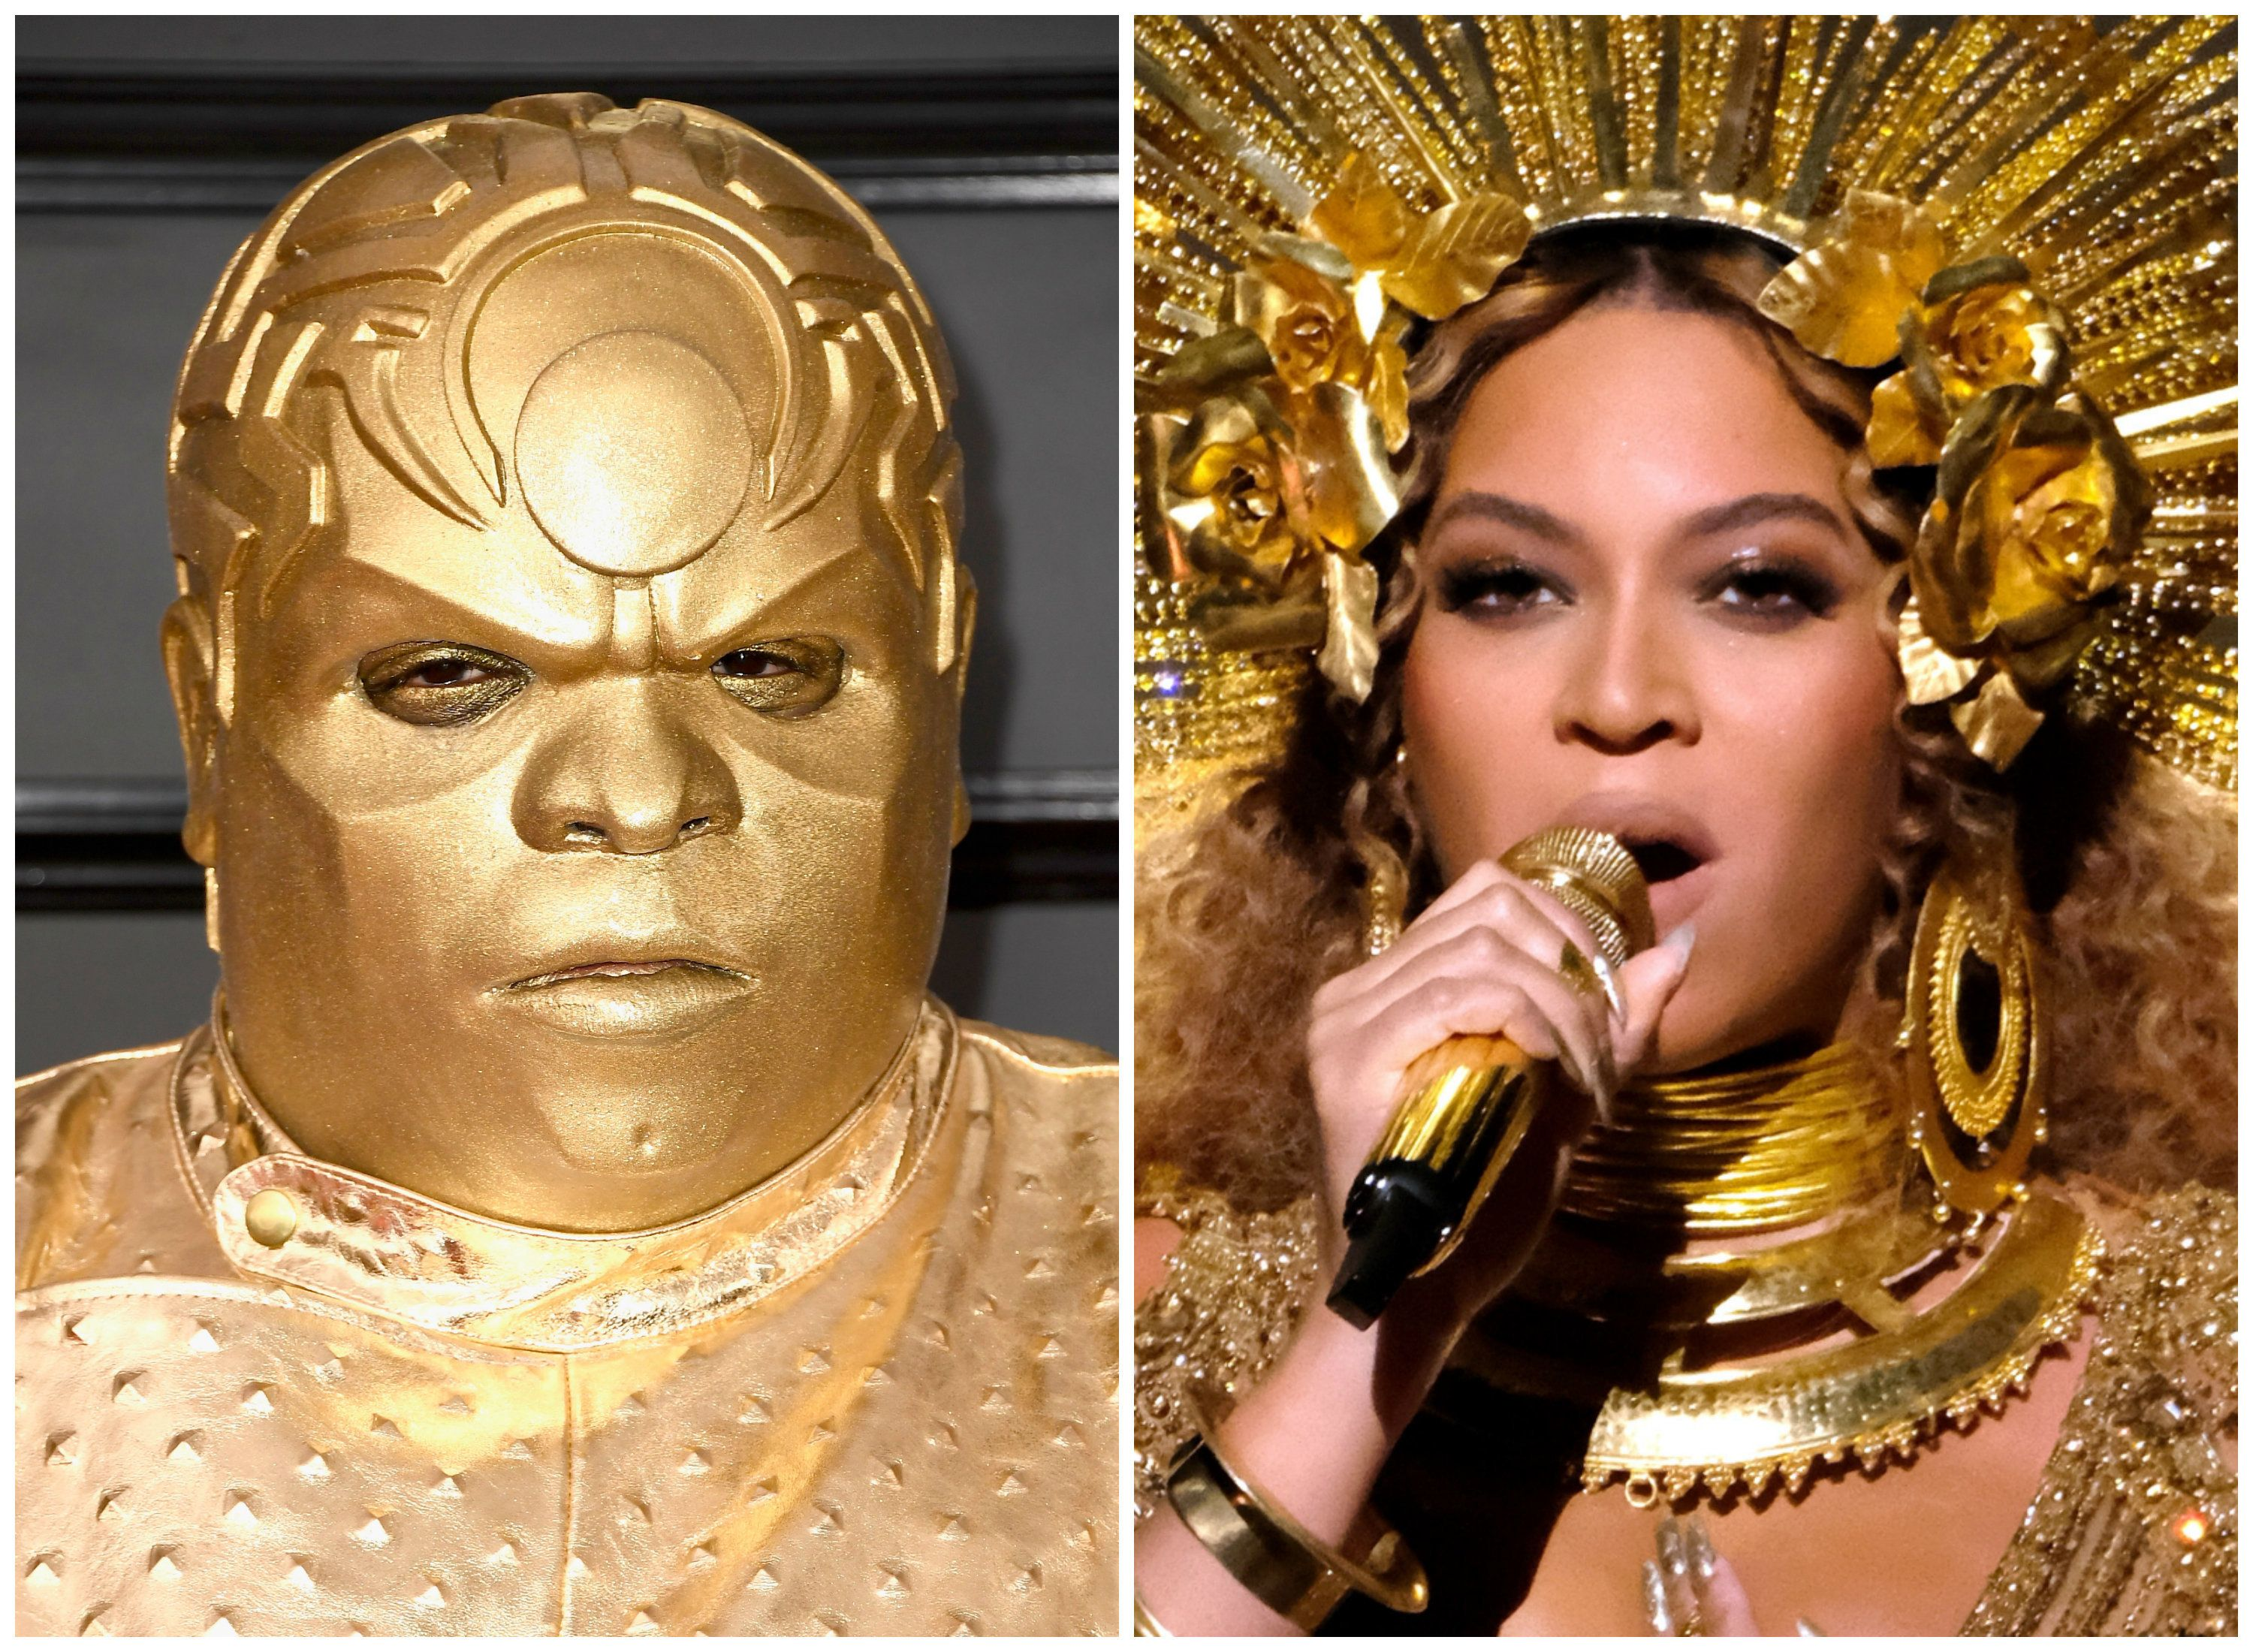 58a1ce17290000f616f26061?ops=1910_1000 ceelo green's grammys outfit got meme'd faster than you can say